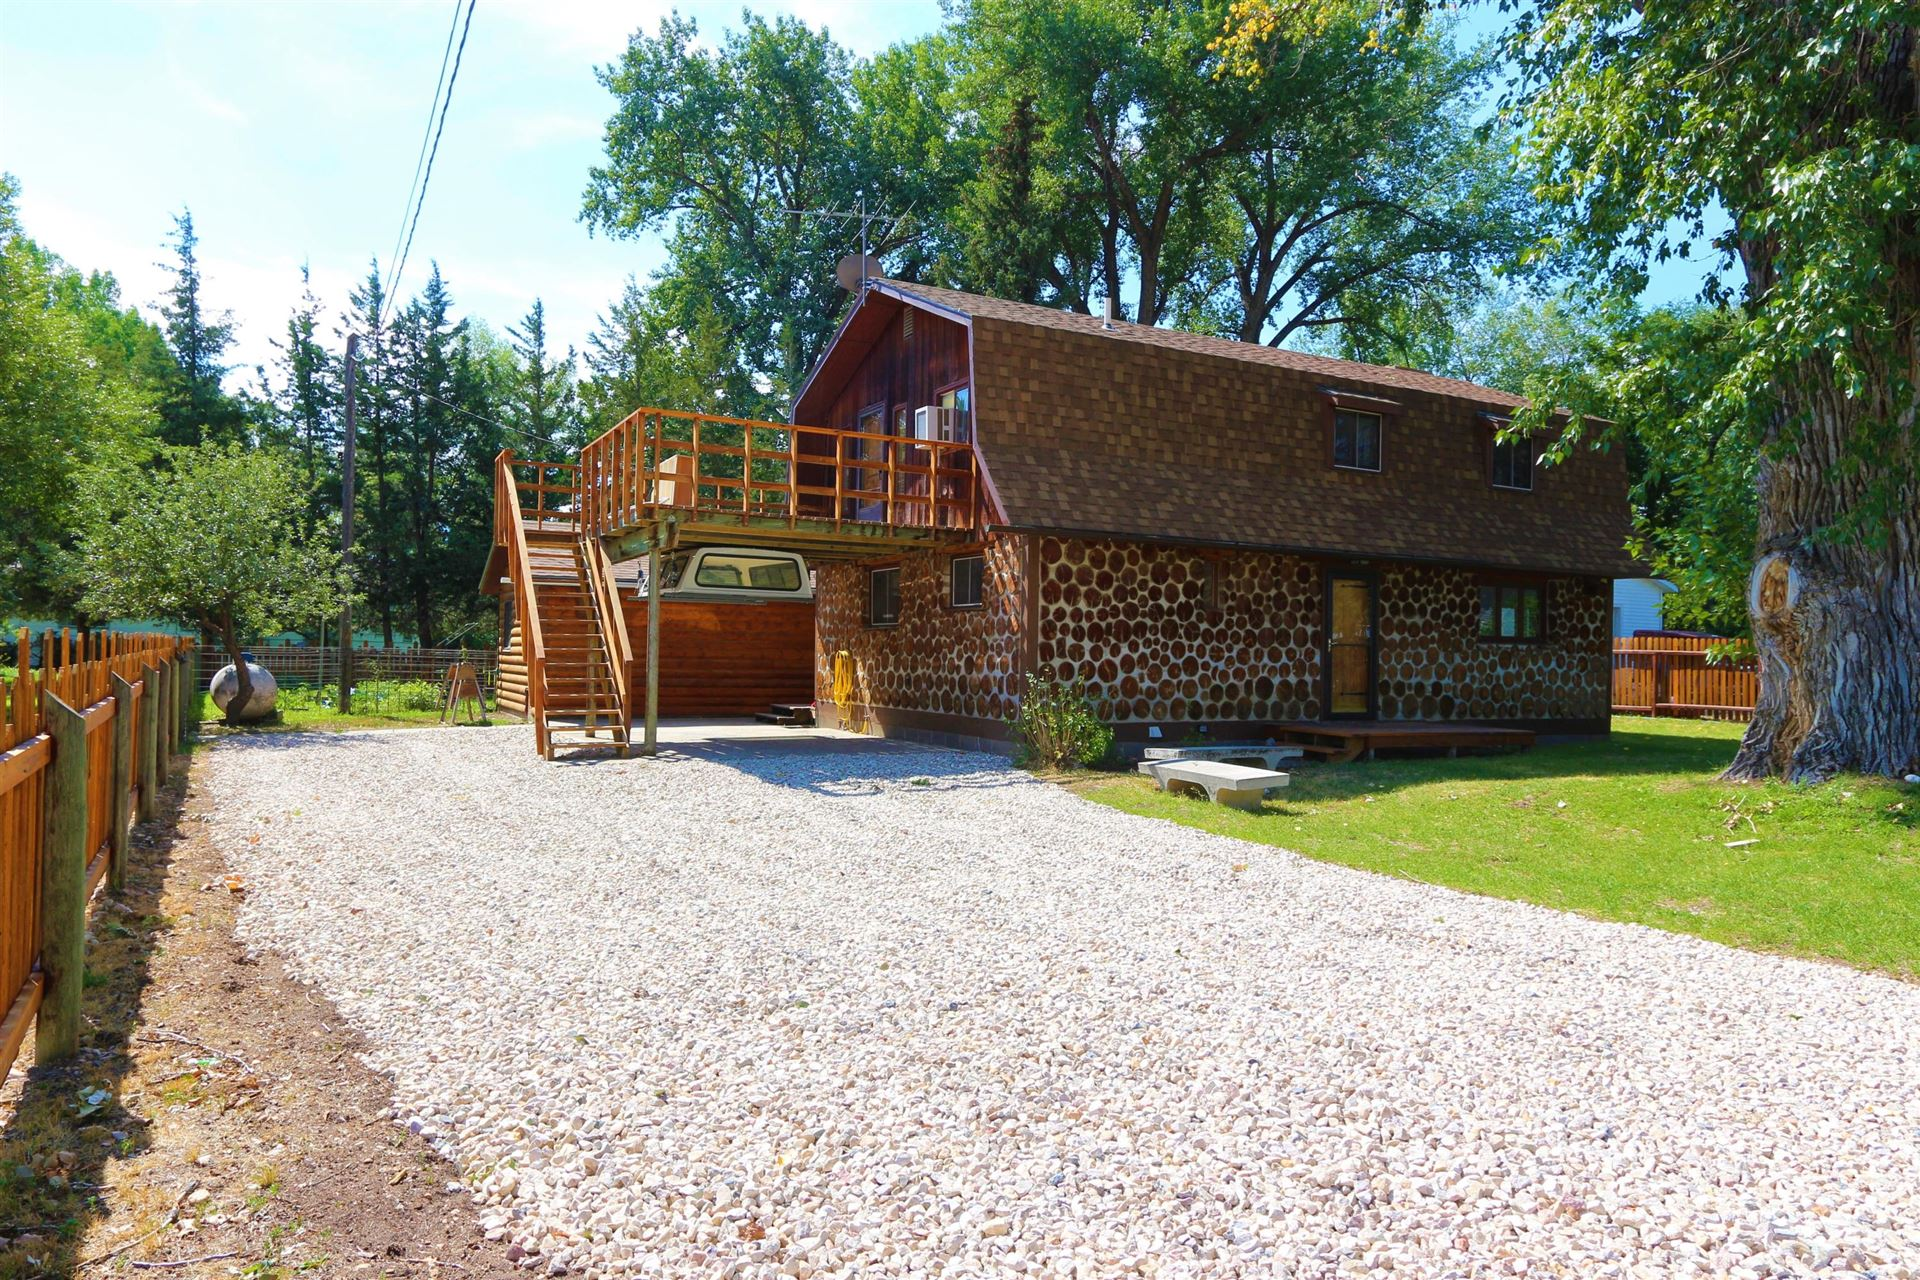 Photo for 307 River Road, Dayton, WY 82836 (MLS # 20-880)